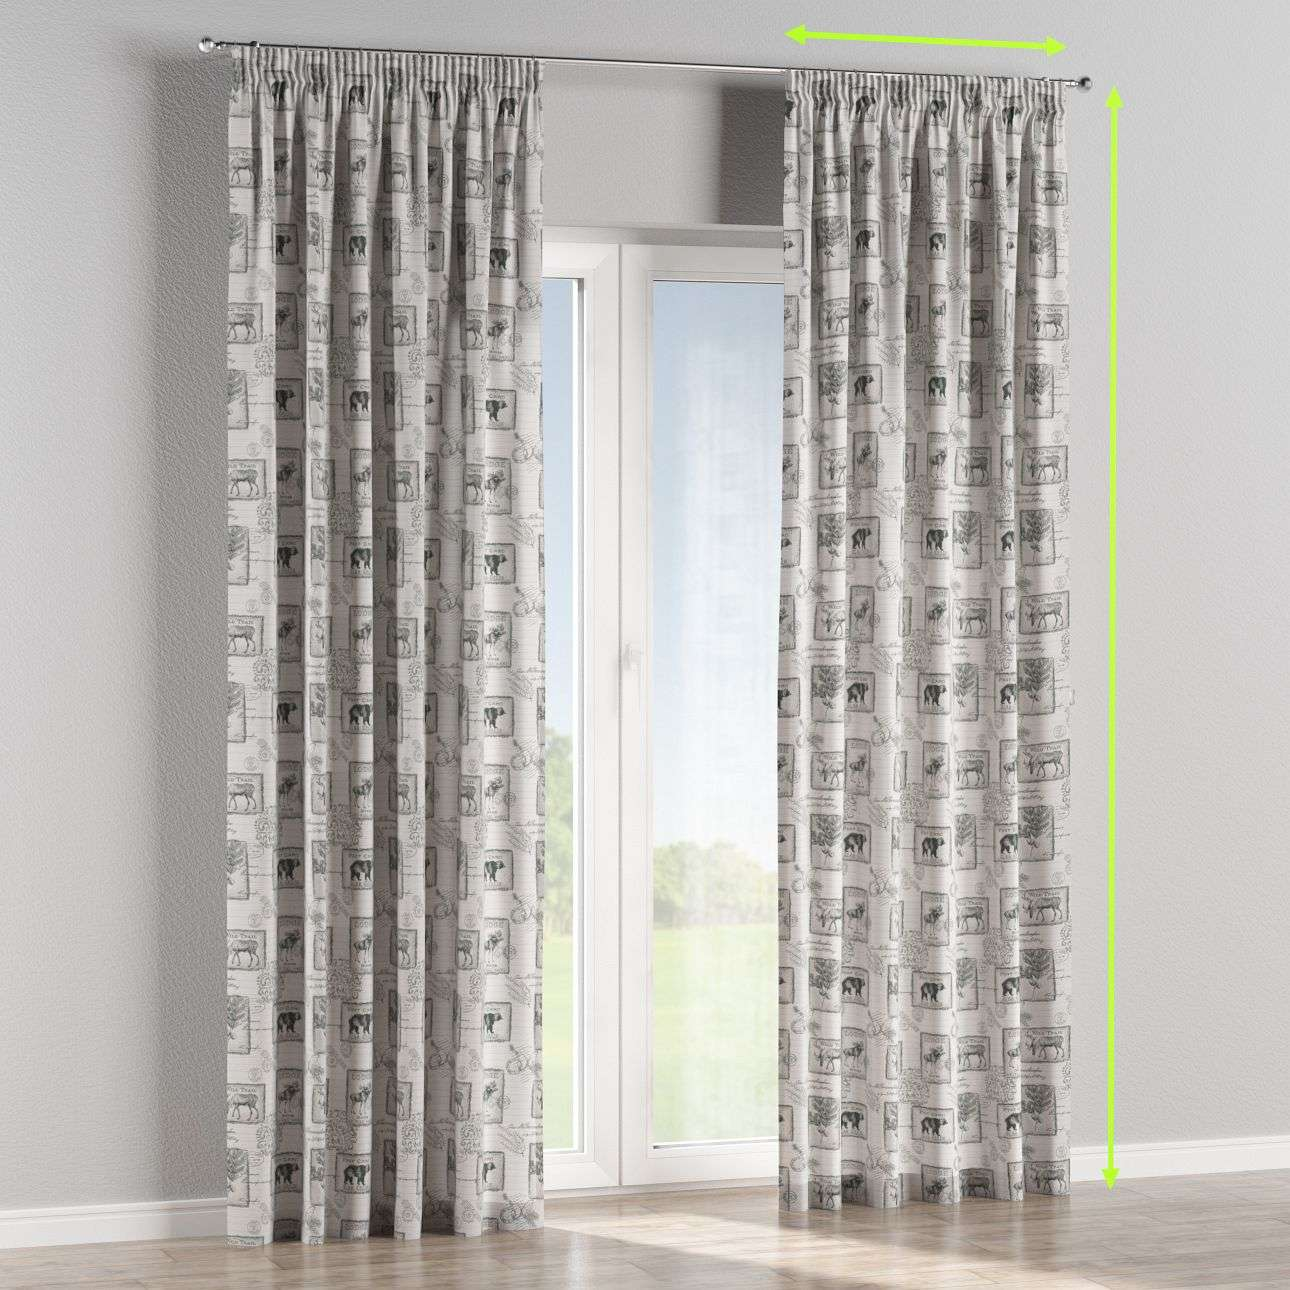 Pencil pleat curtains in collection Nordic, fabric: 630-18